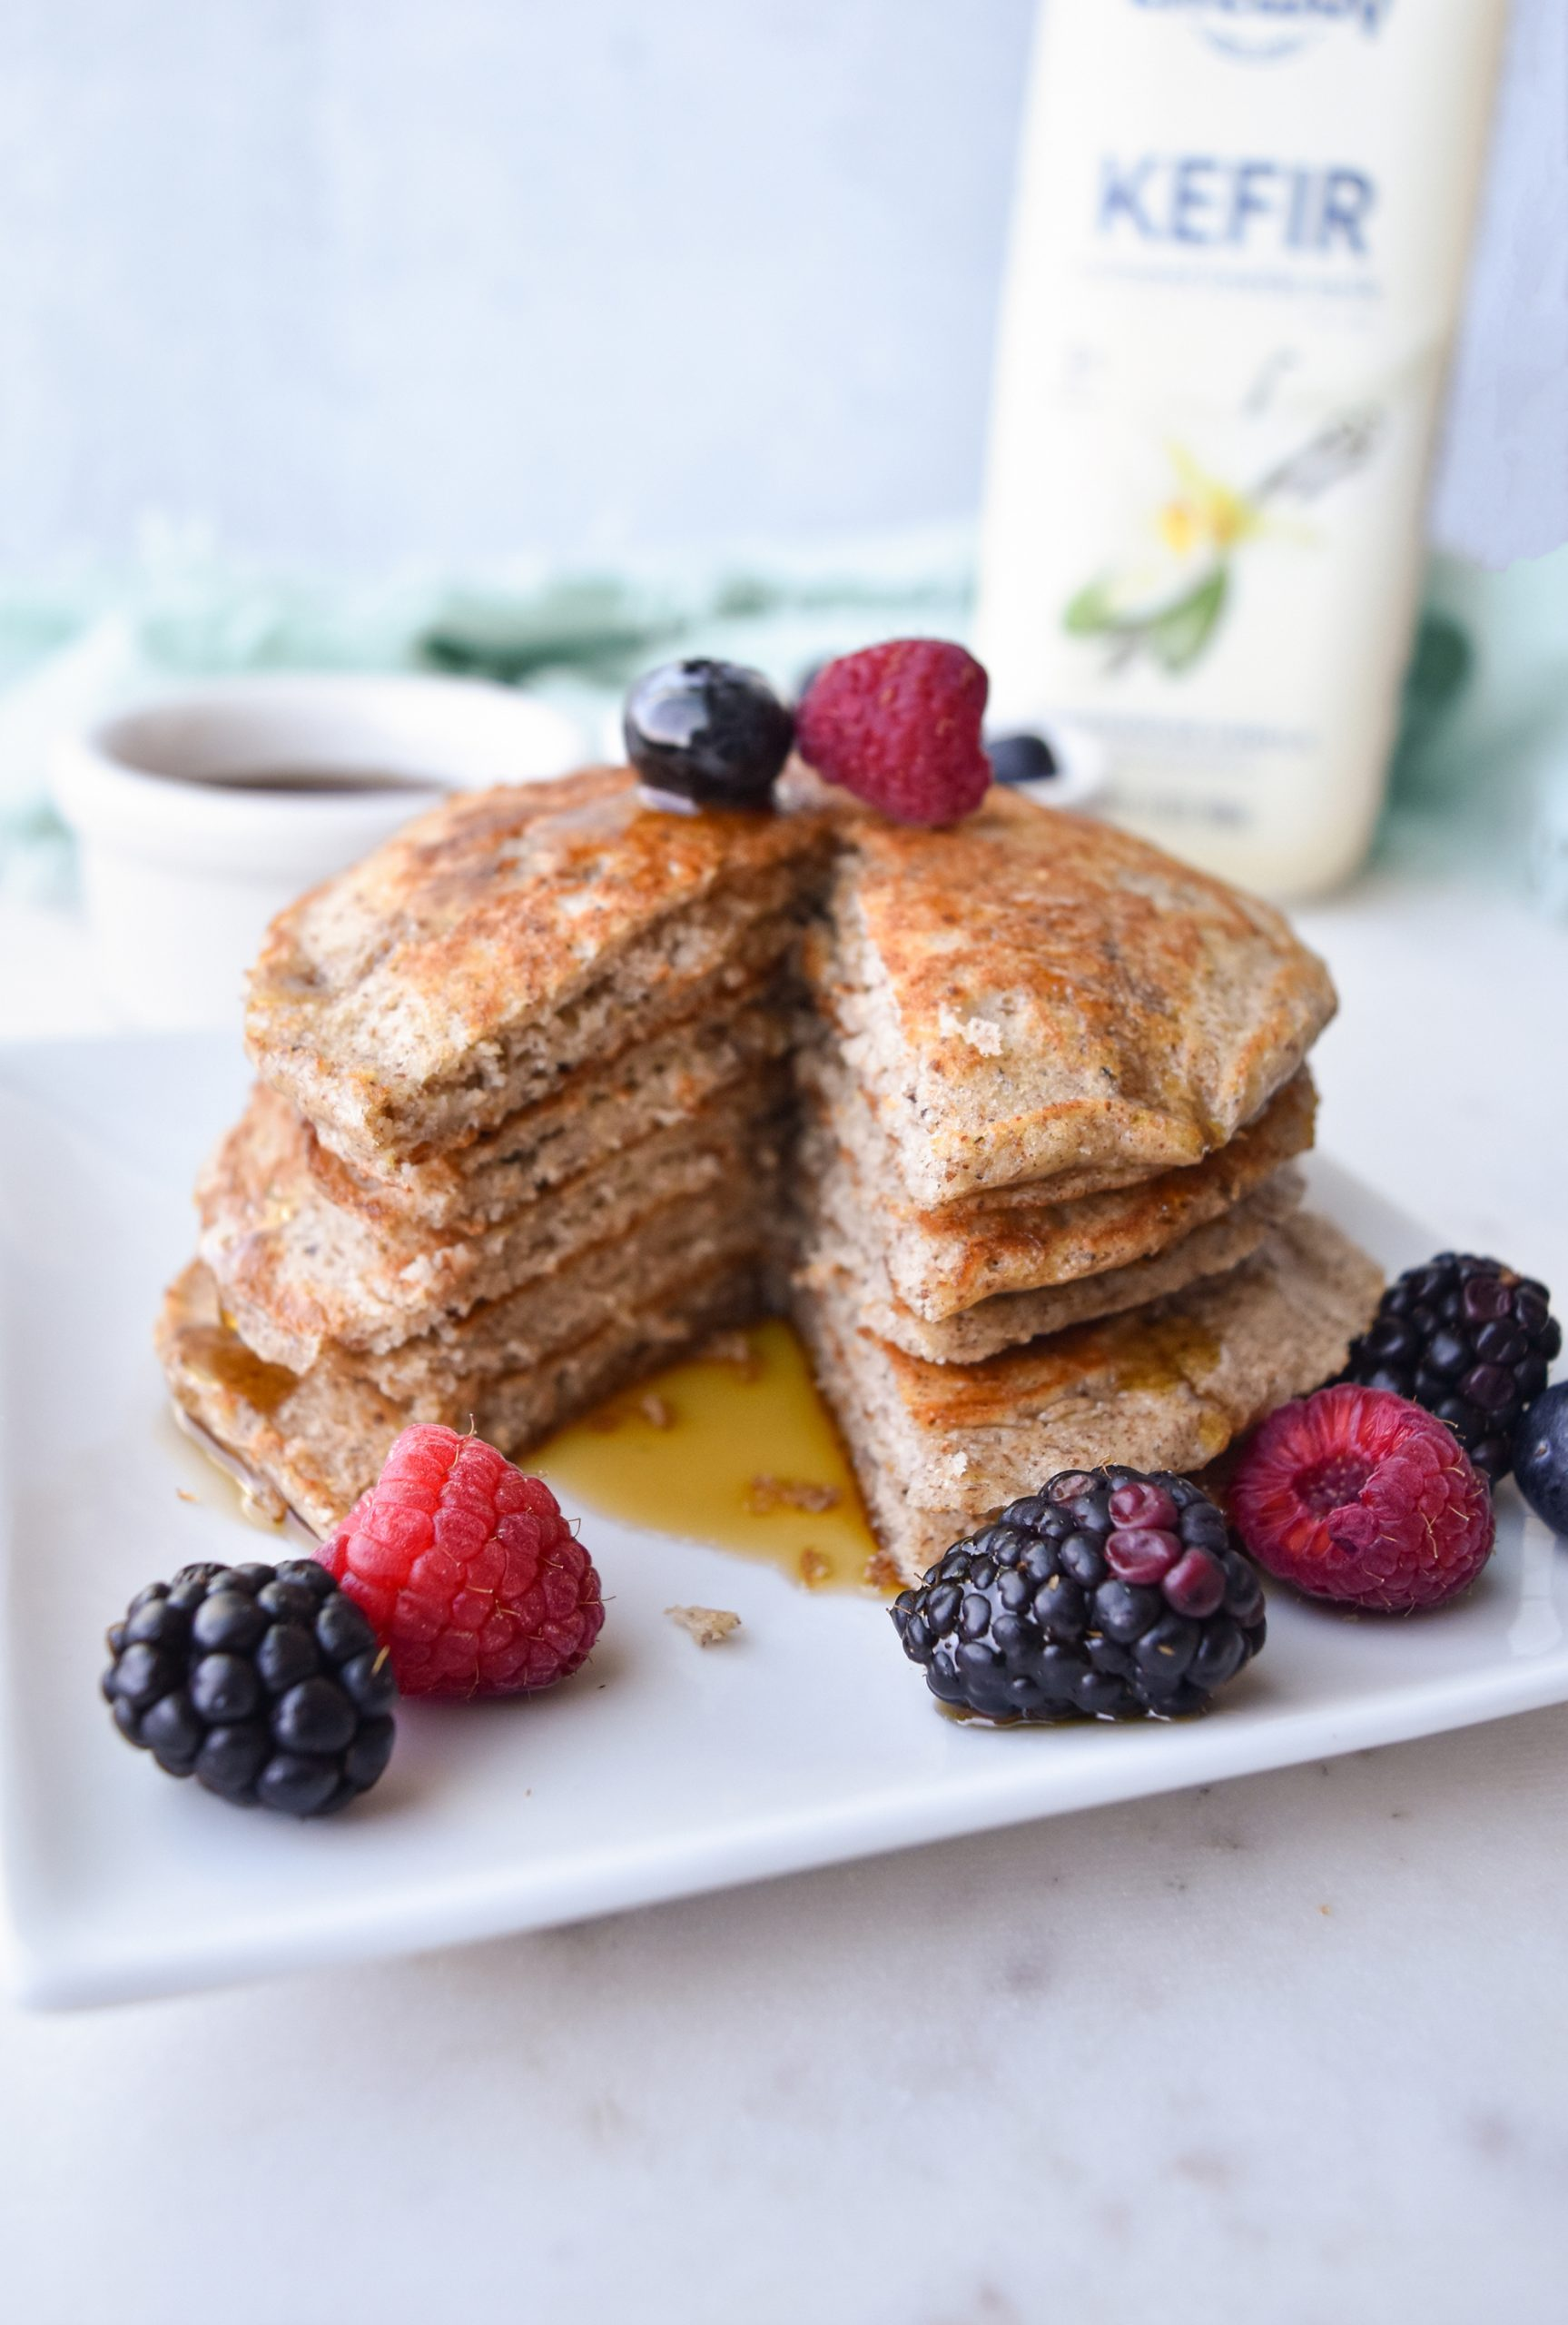 Pancakes on a white plate